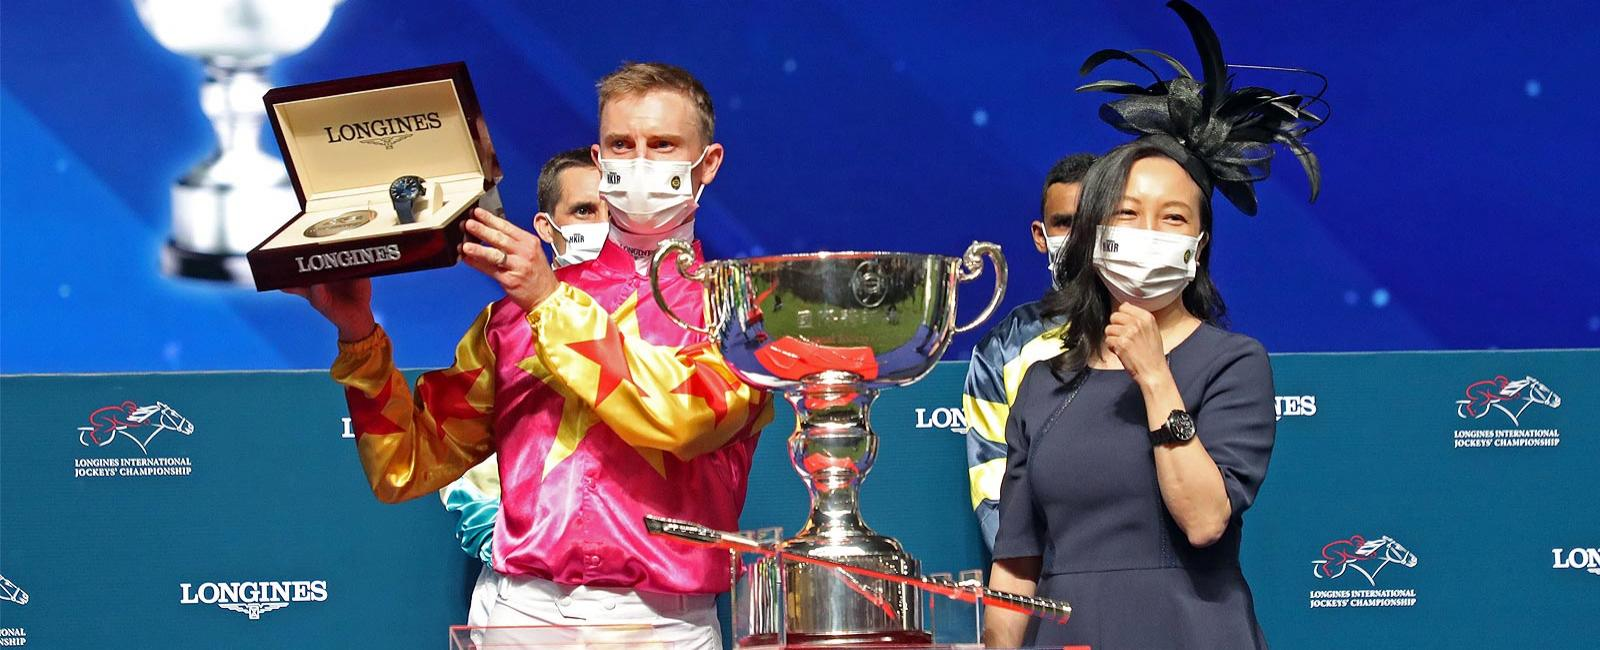 Longines International Jockey's Championships; Zac Purton, Horse Racing, 2020